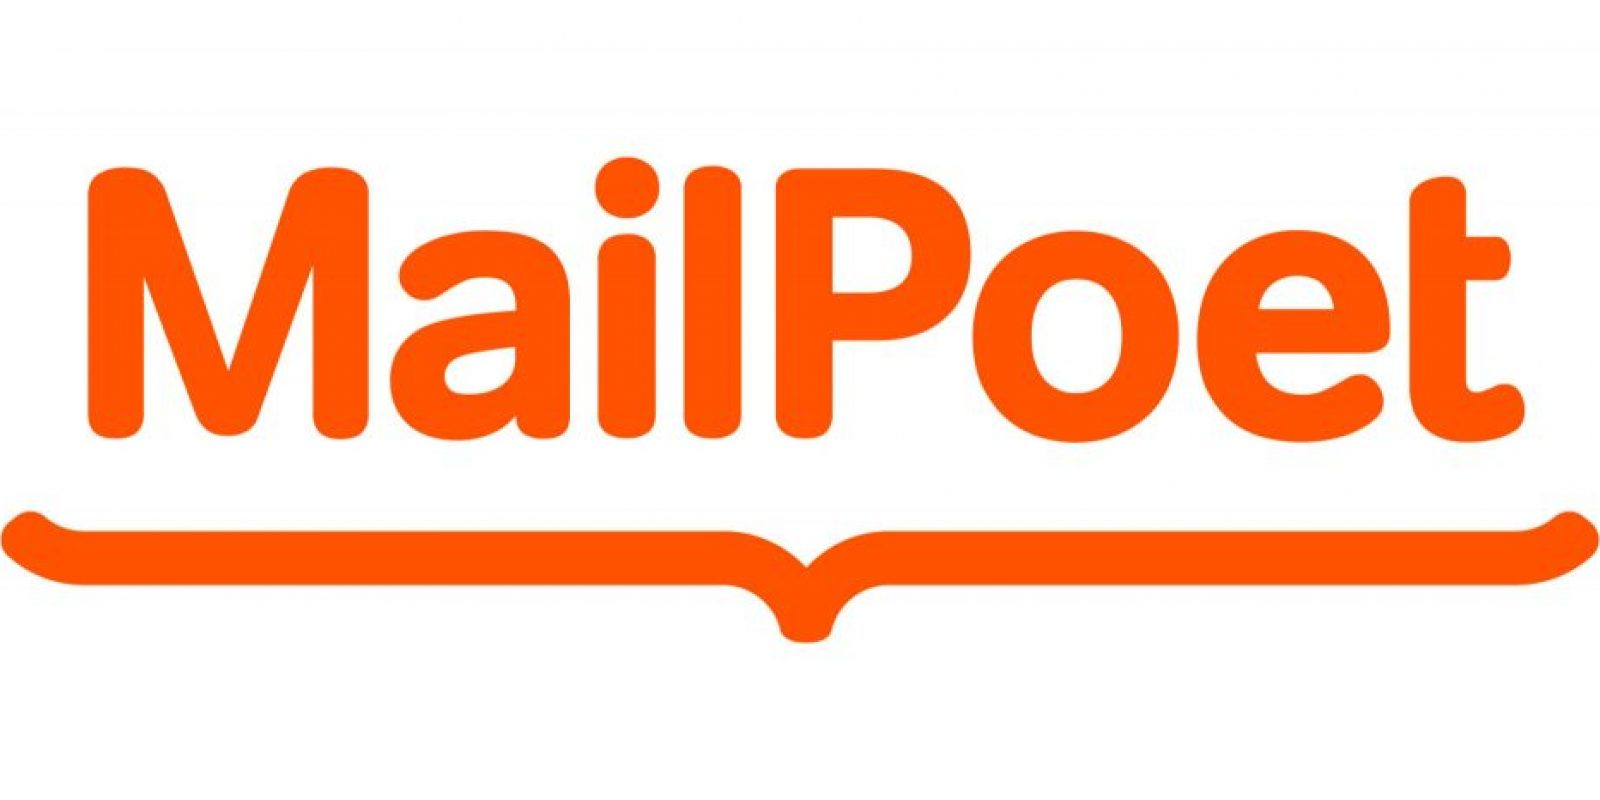 mailpoet-has-been-bought-by-woocommerce/automattic